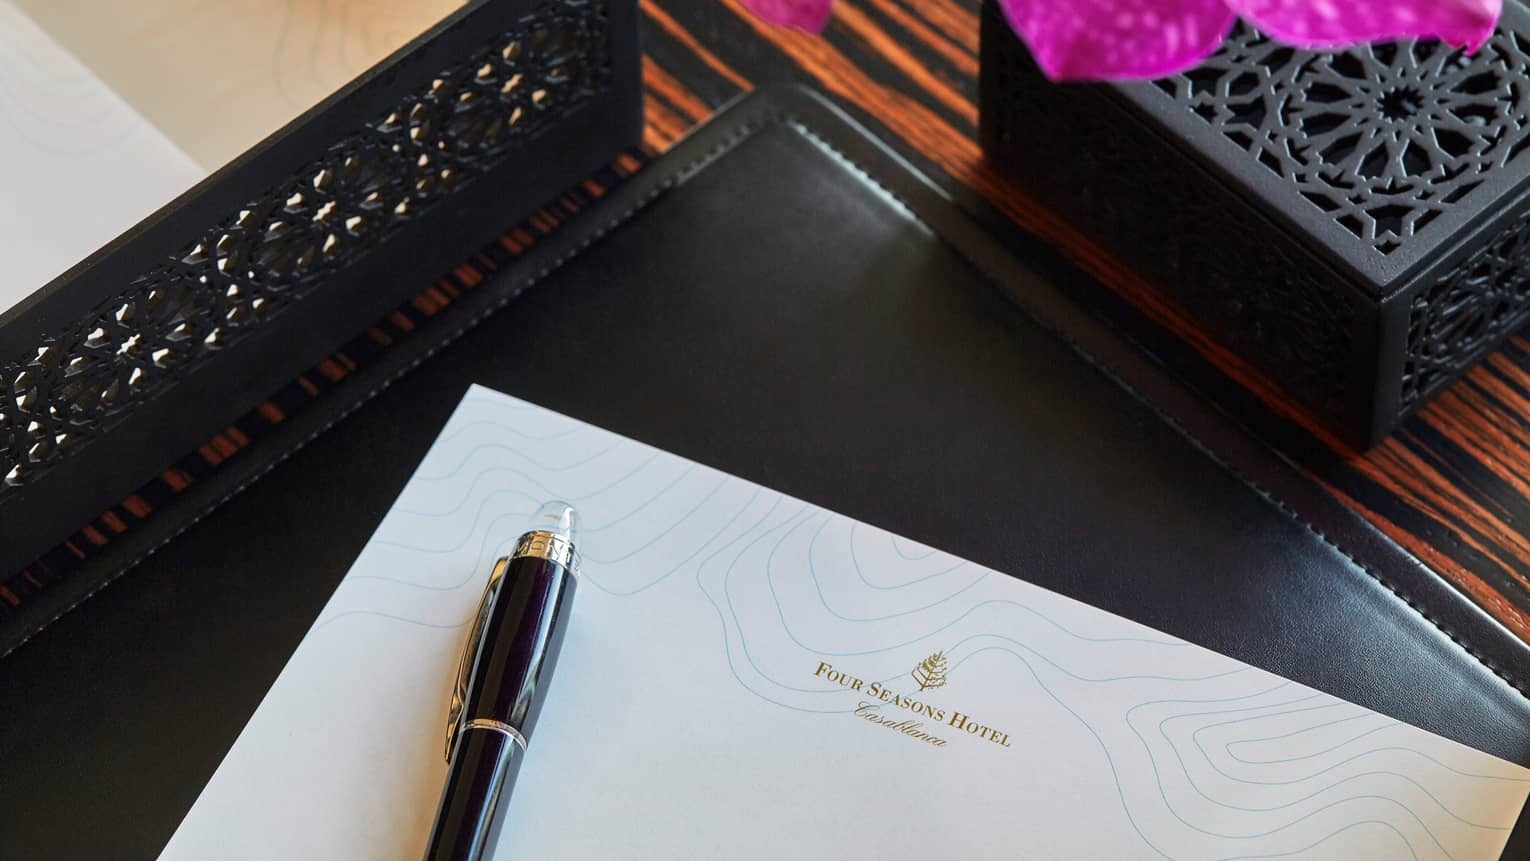 Corner of white piece of paper with Four Seasons logo, pen